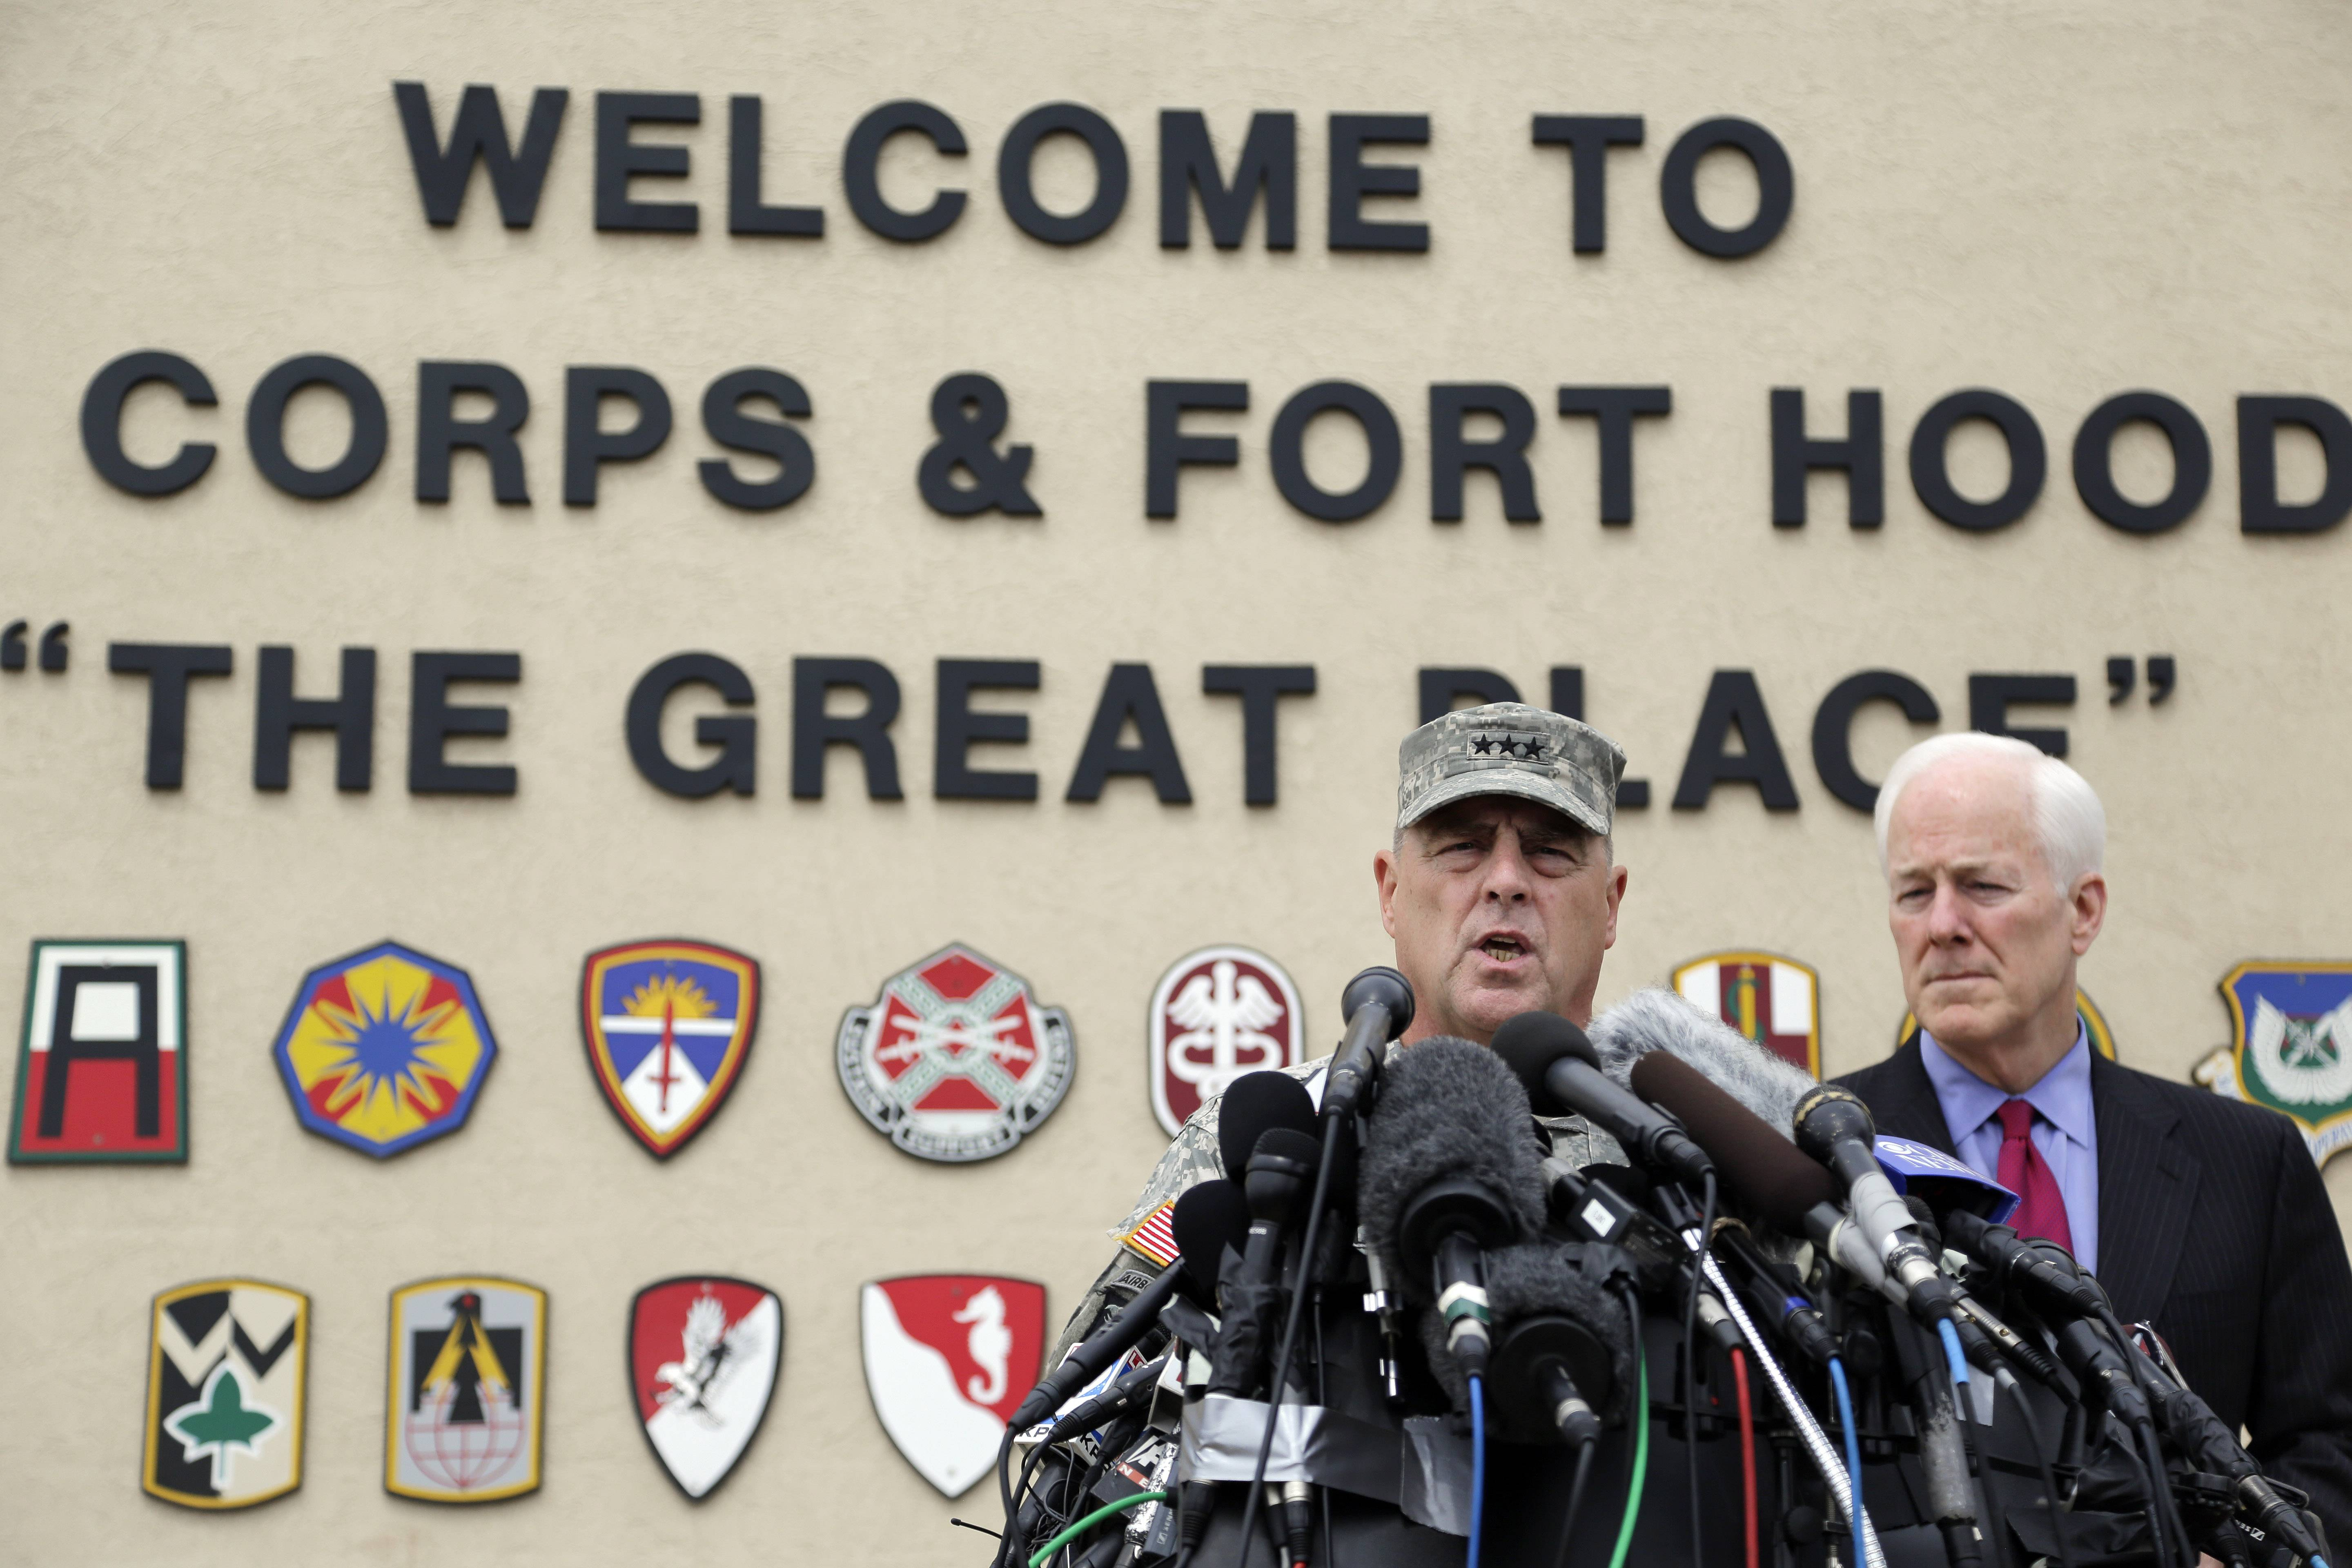 Lt. Gen. Mark Milley, left, and U.S. Sen. John Cornyn, right, talk to the media near Fort Hood's main gate Thursday. A soldier opened fire Wednesday on fellow service members at the base, killing three people and wounding 16 before committing suicide.